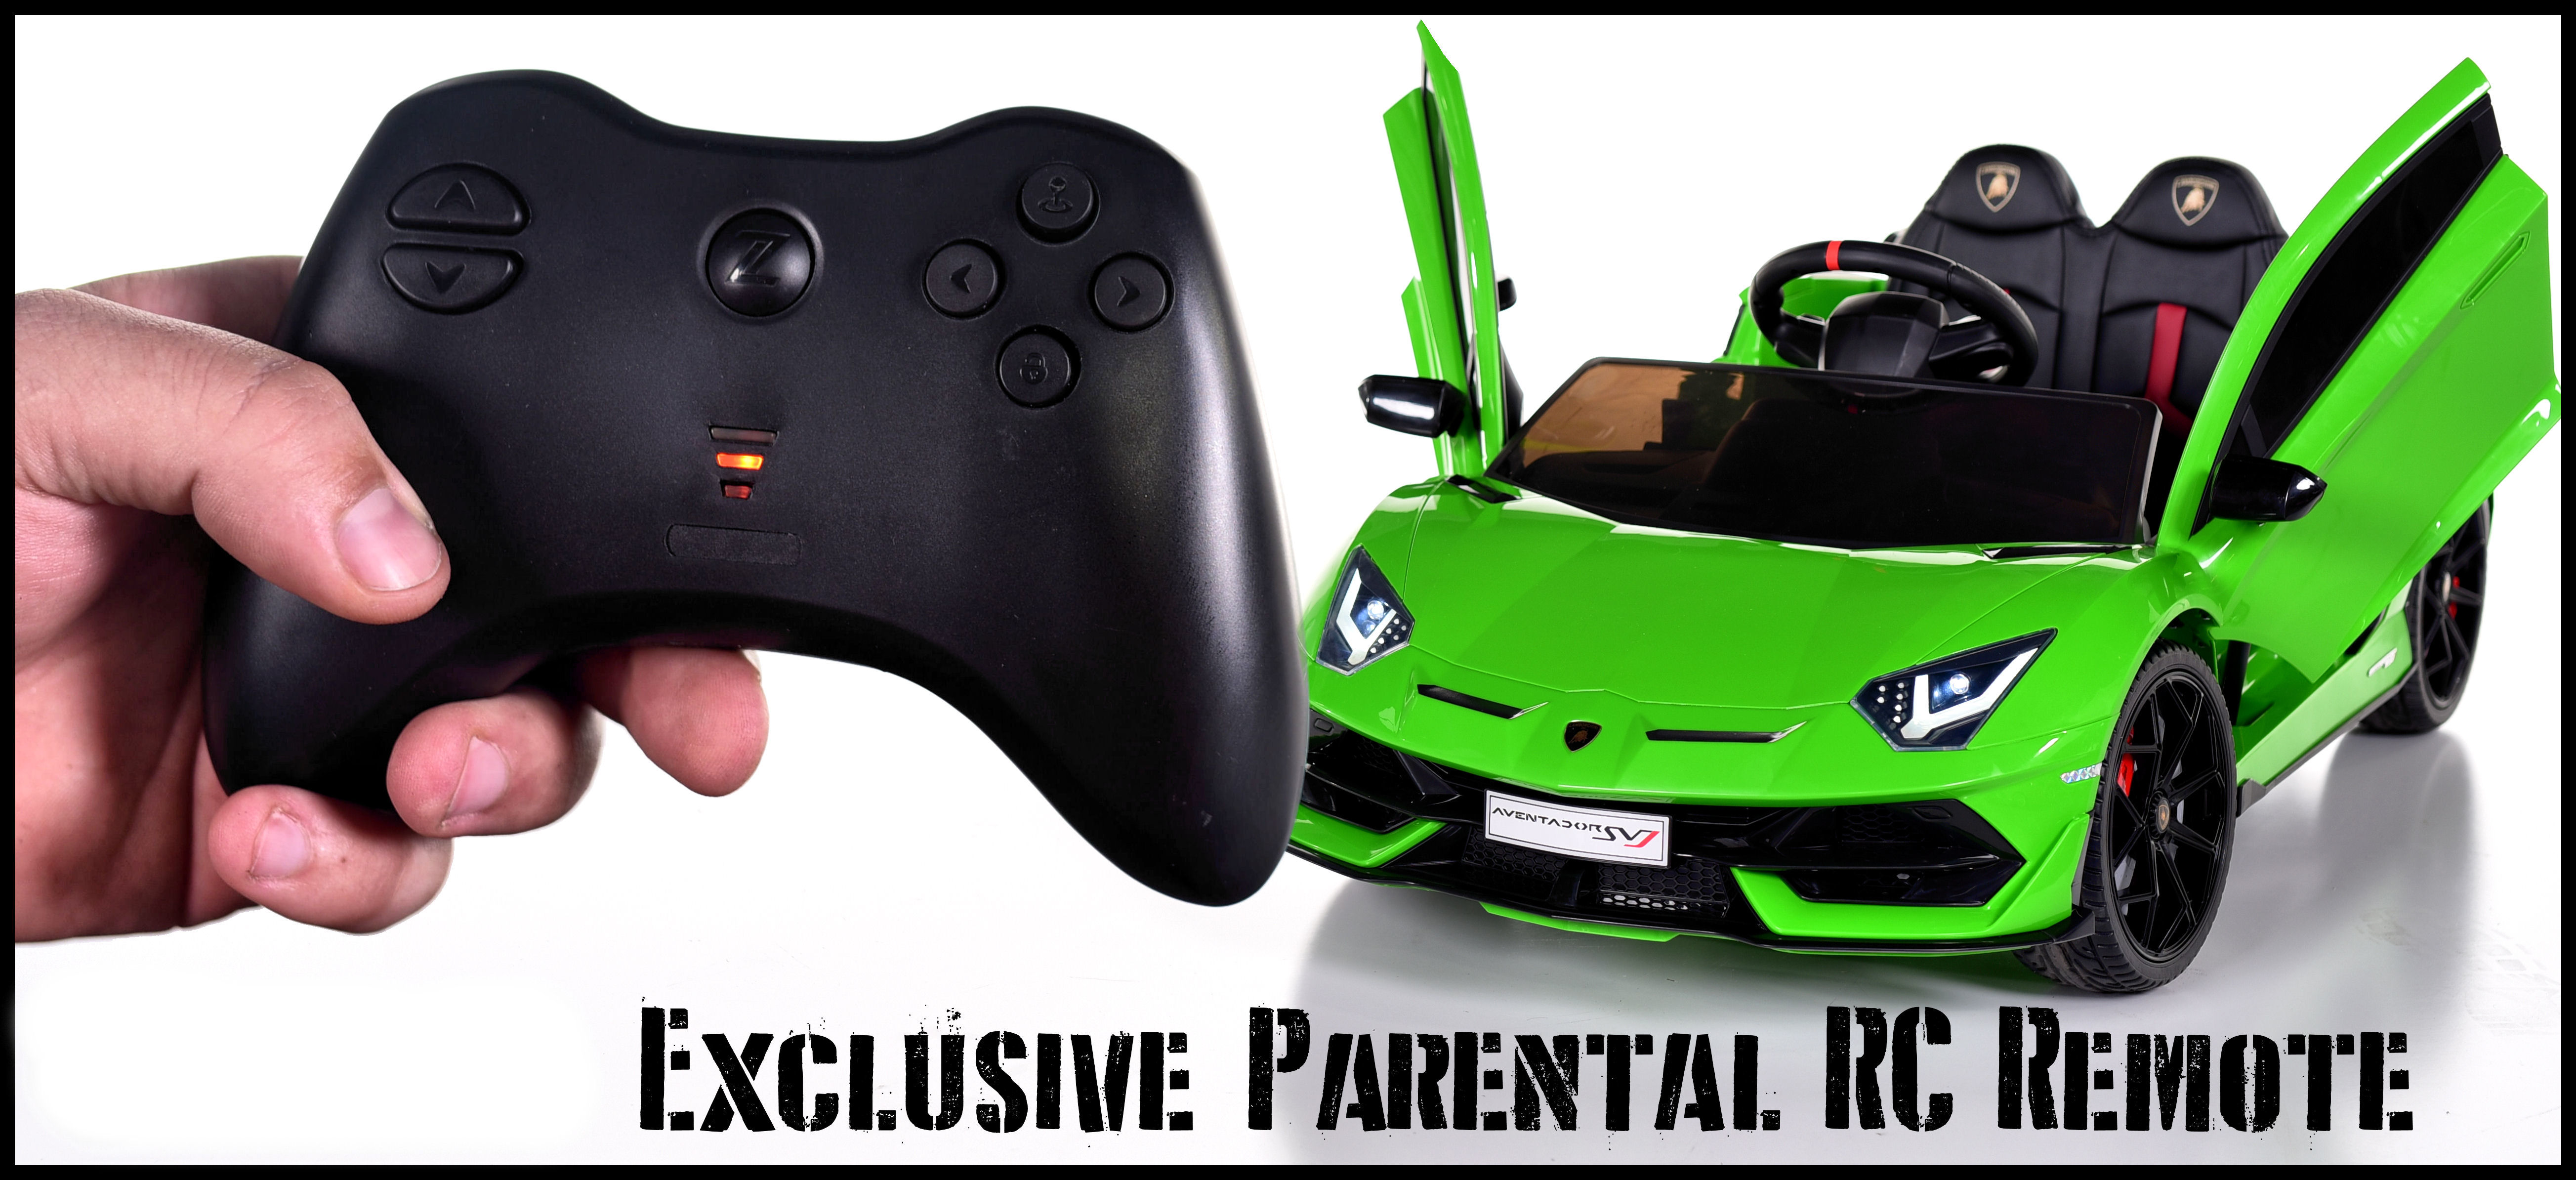 performante-remote1.jpg